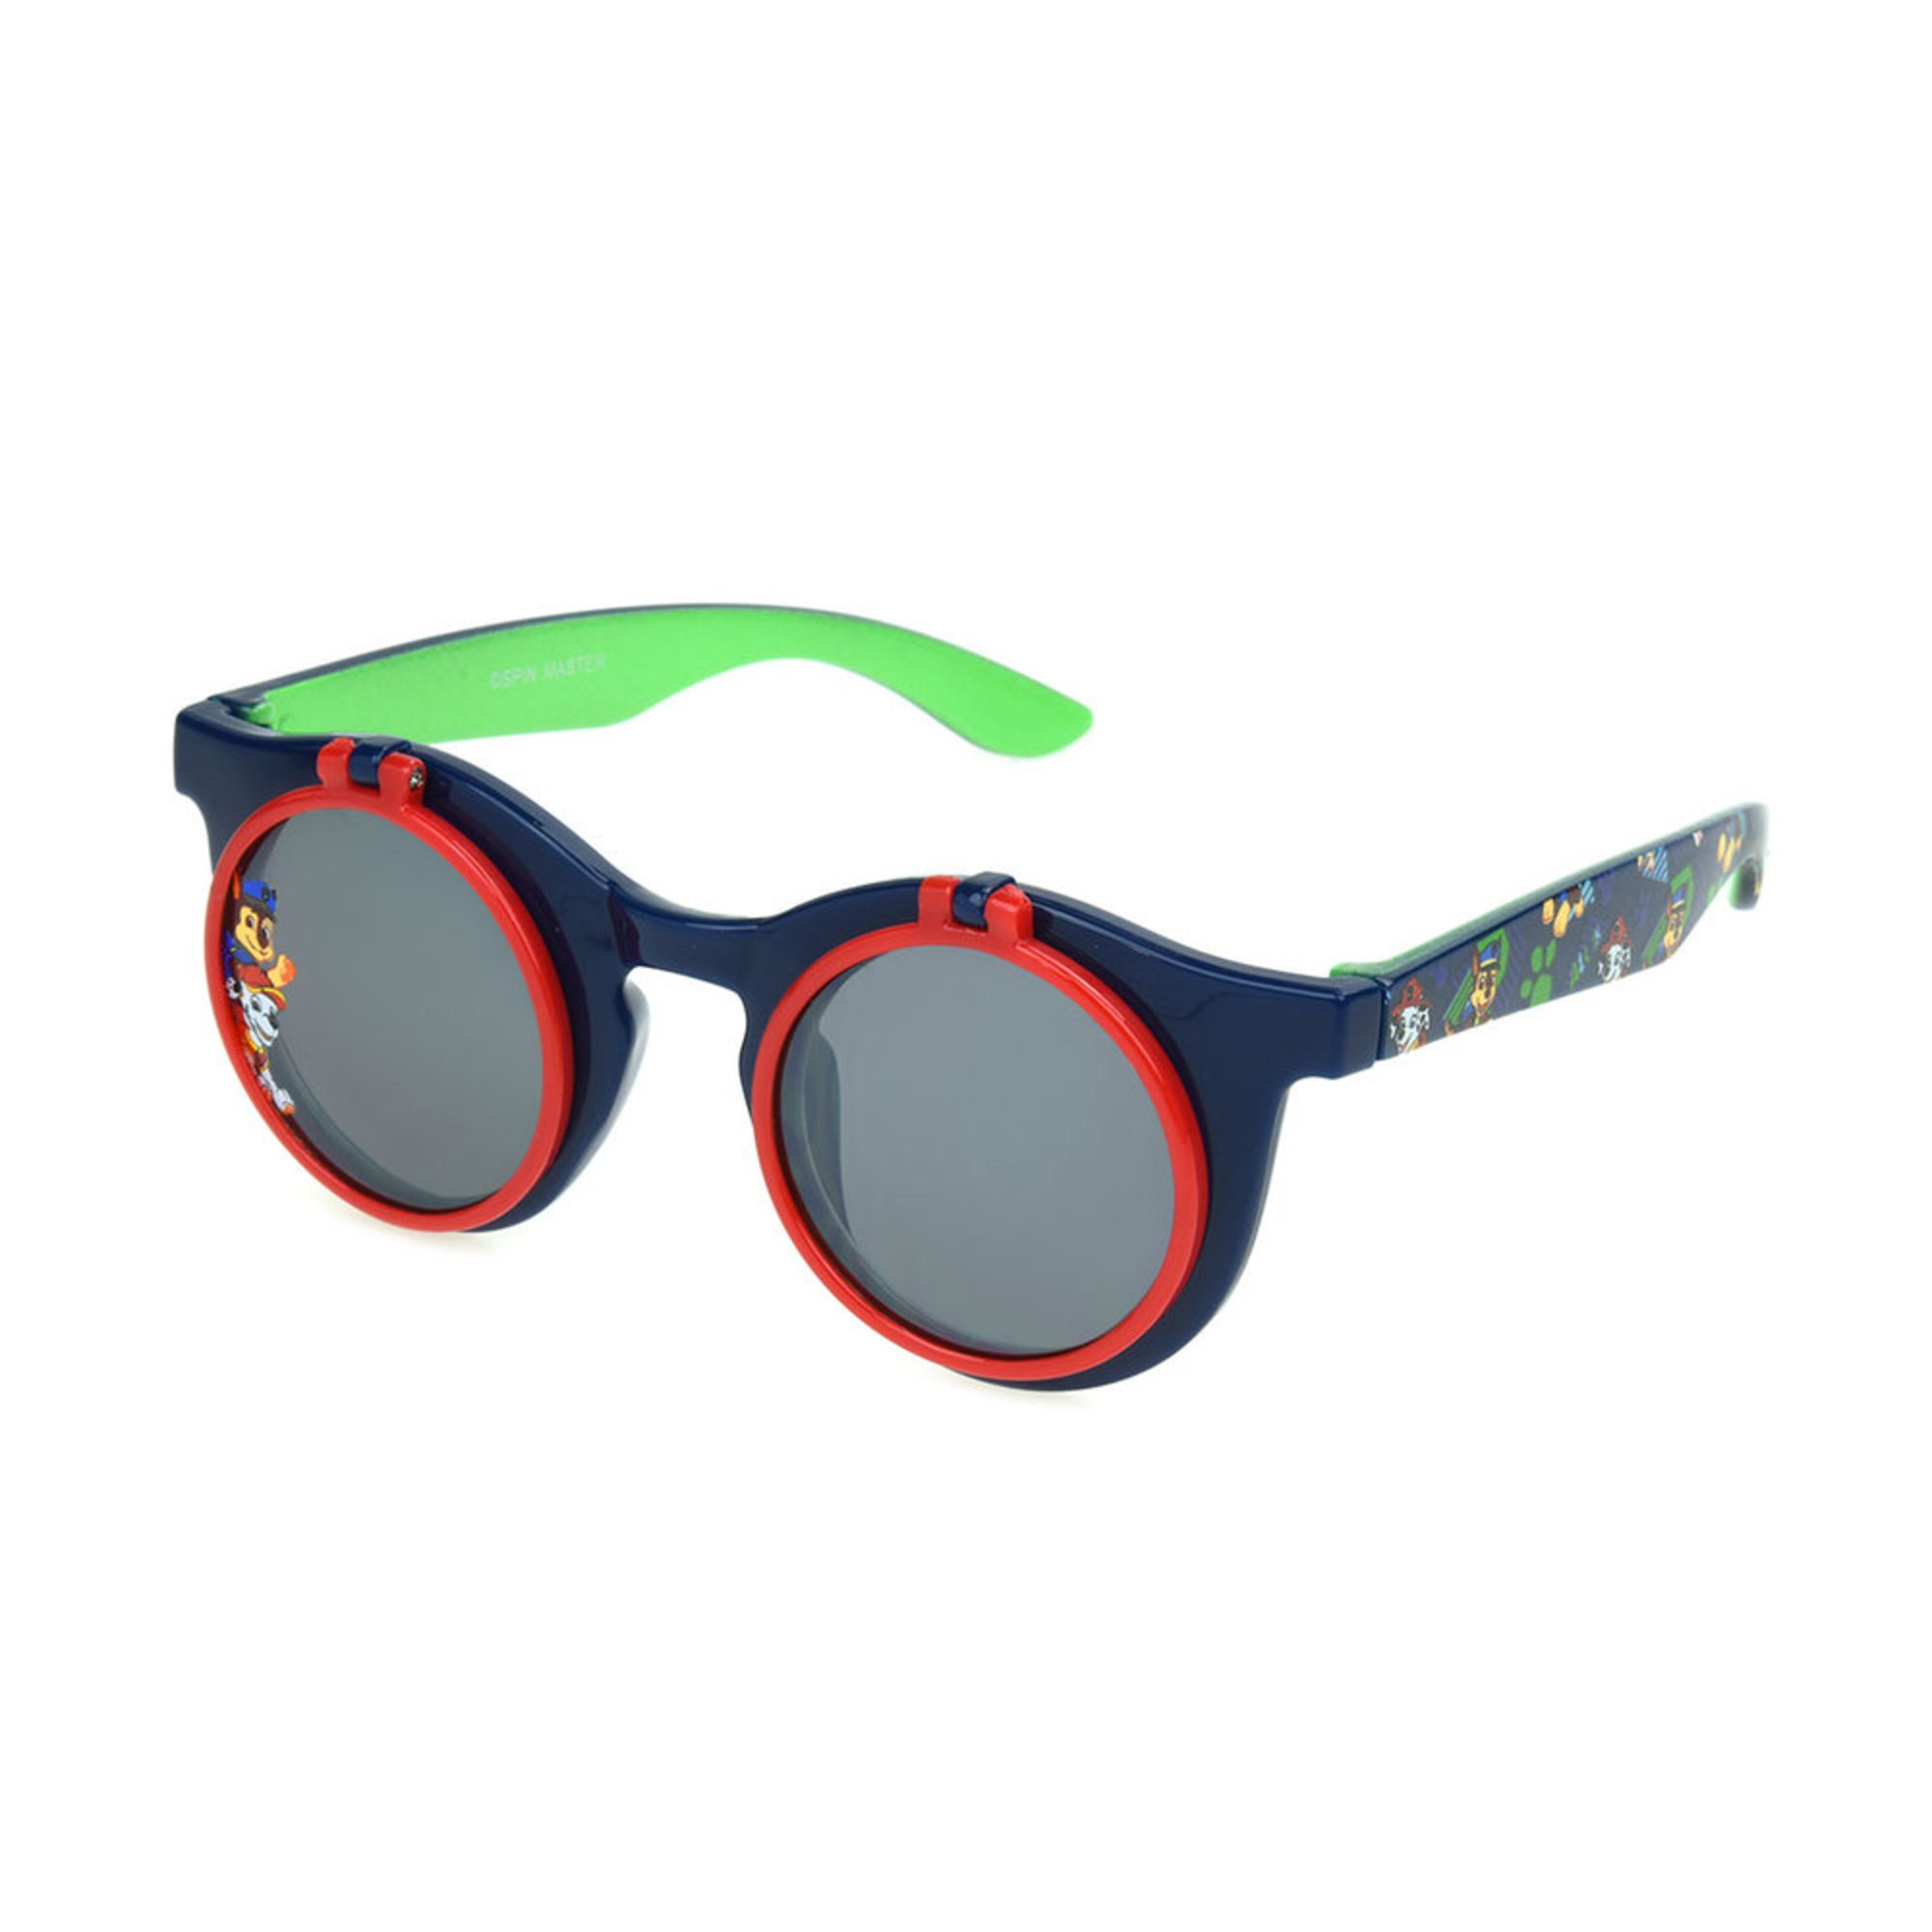 a91fcbb82 Riviera Kids Nickelodeon Paw Patrol Sunglasses | Kids' Sunglasses ...